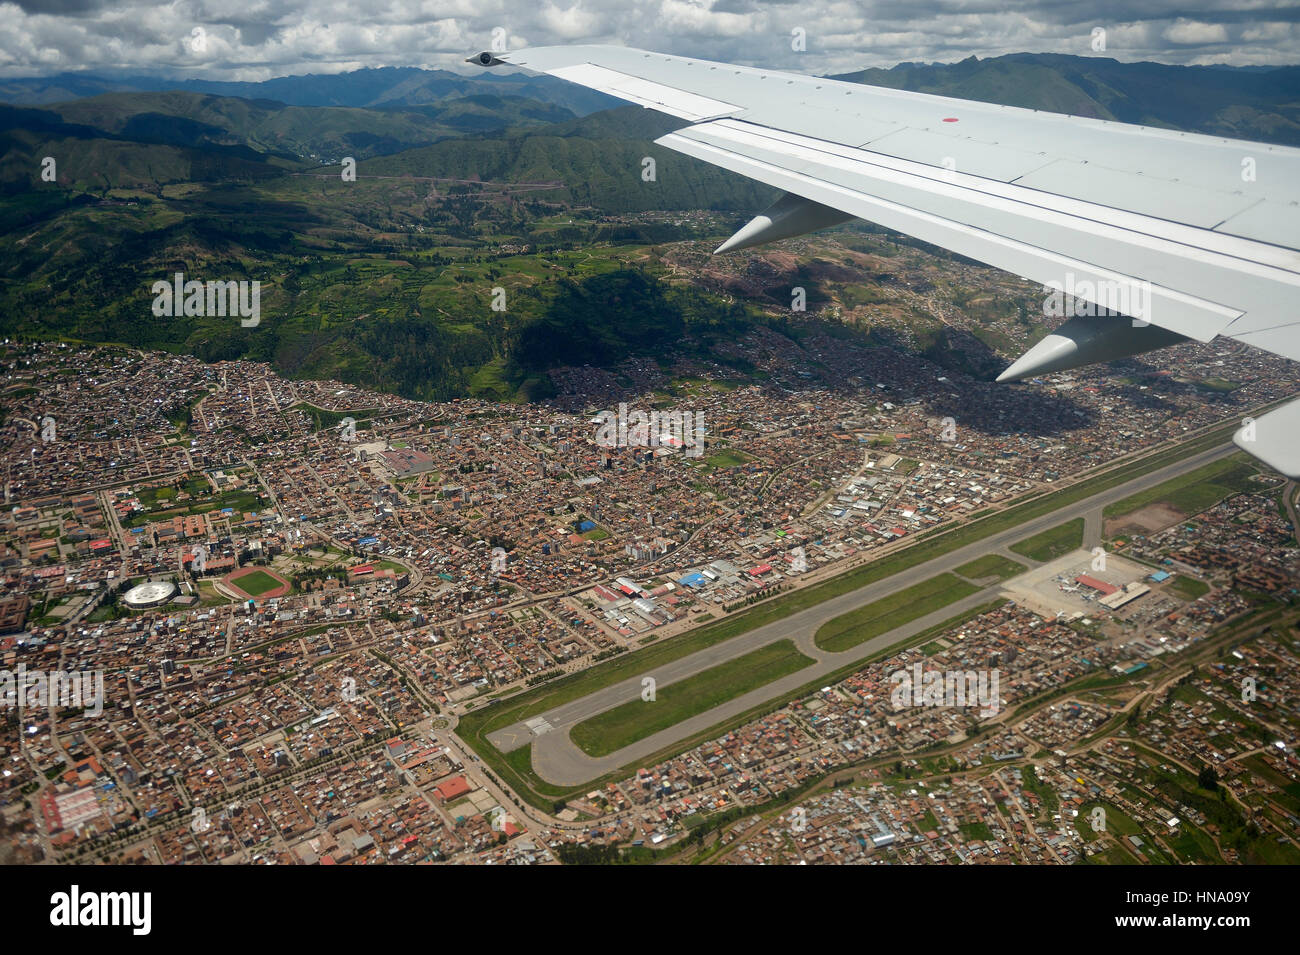 Cityscape with Andes from aircraft landing at the airport Aeropuerto Alejandro Velasco Astete, Cusco Province, Peru - Stock Image